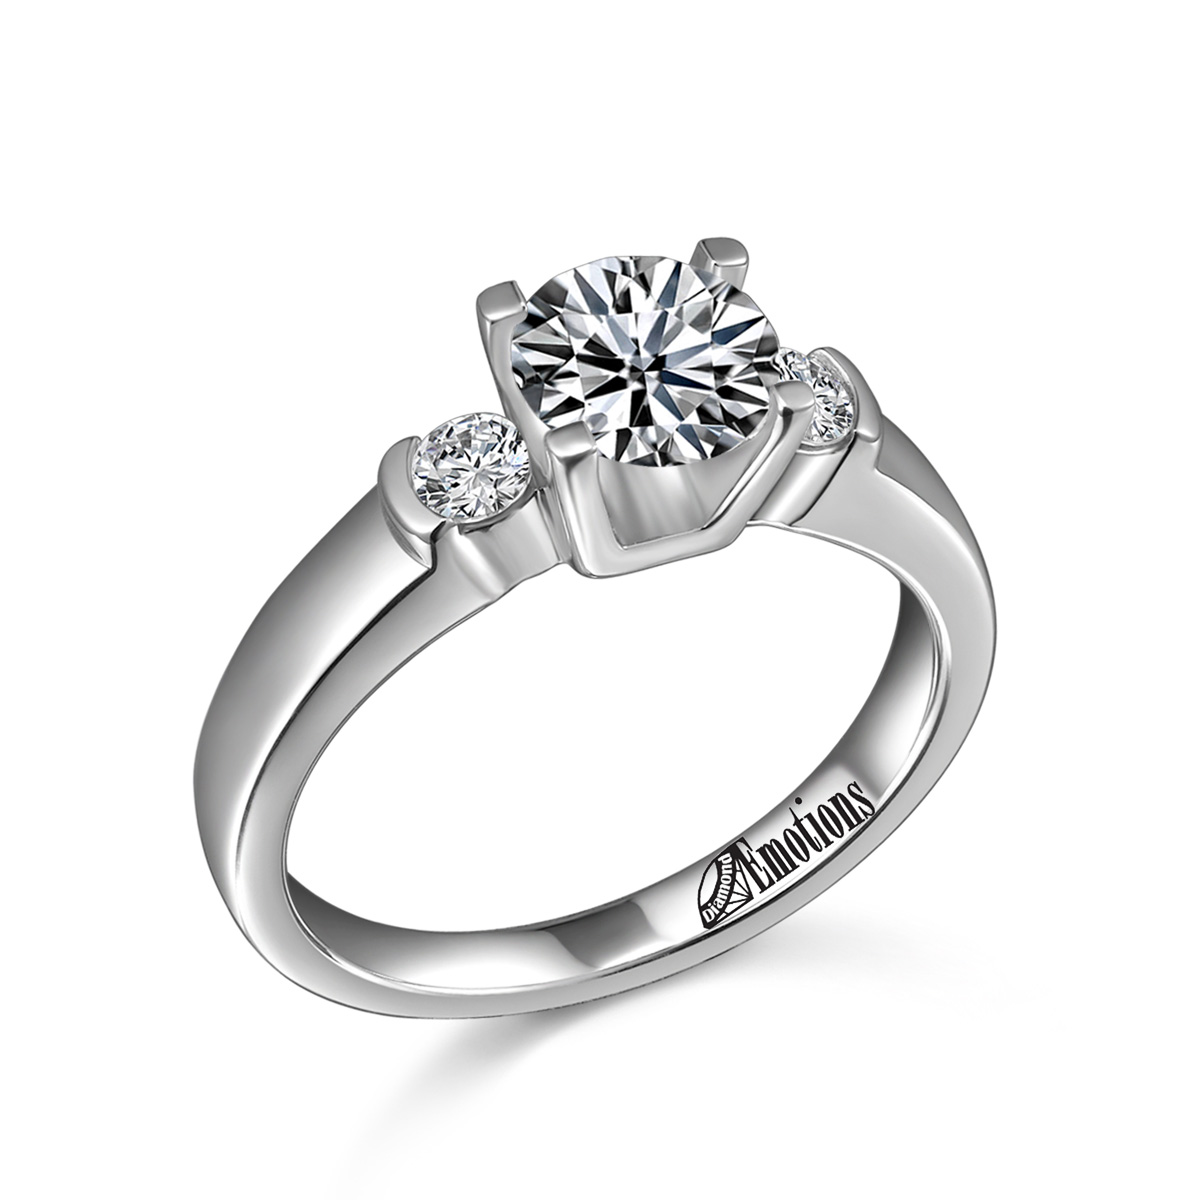 Fine Jewelry 001 142 00058 Engagement Rings From Harr S Jewelry